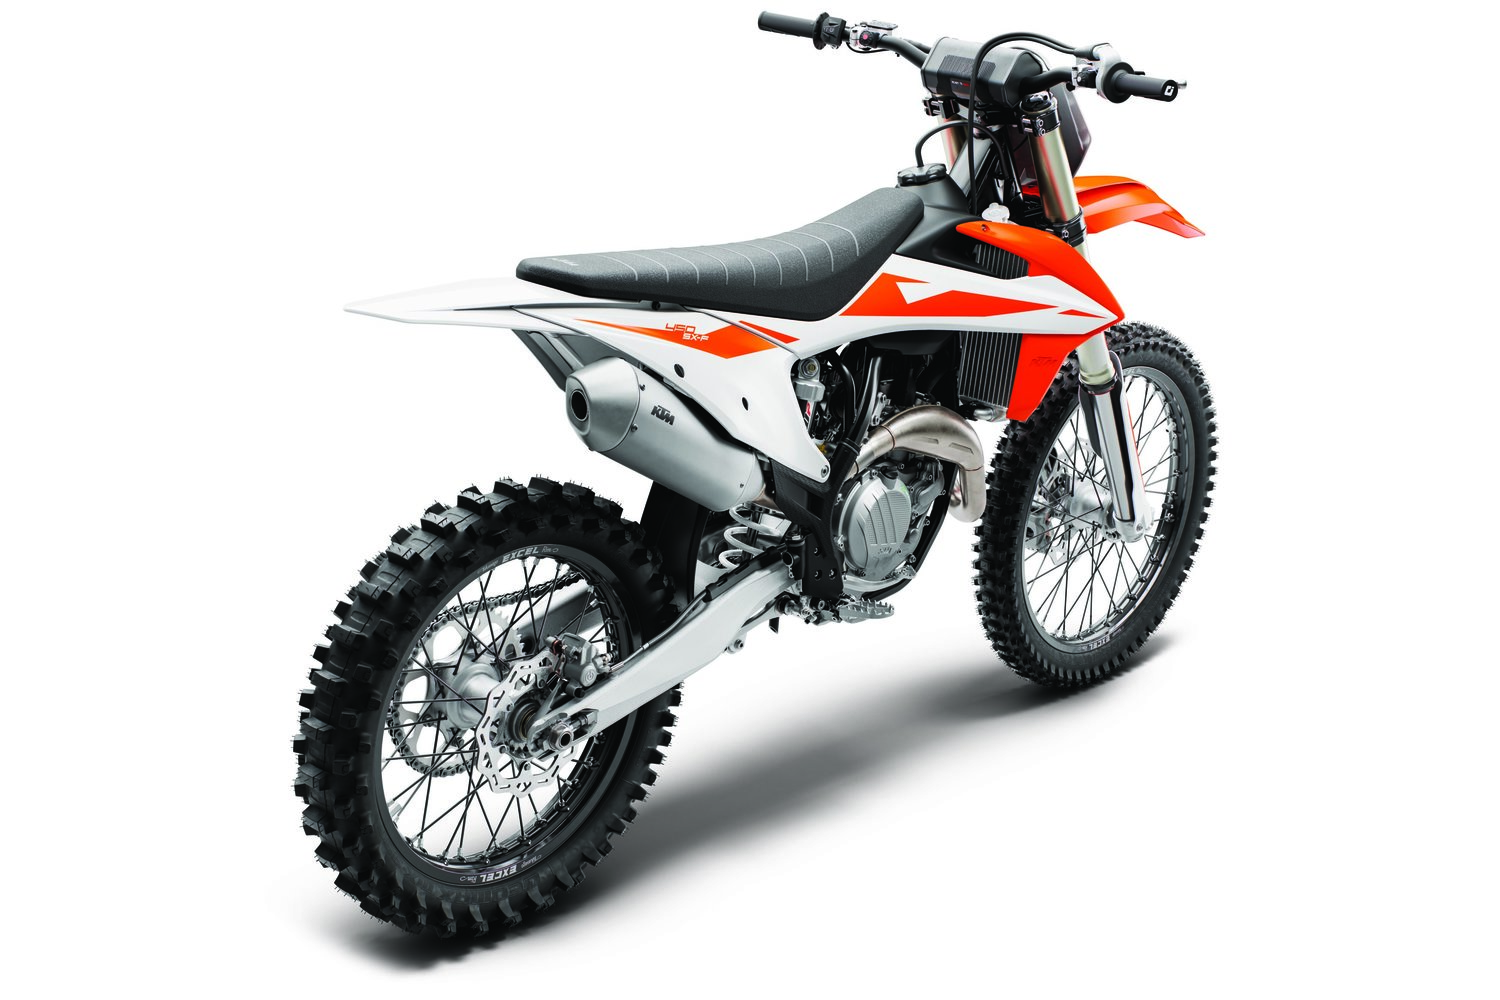 2019 ktm sx sx f motorcycles first look